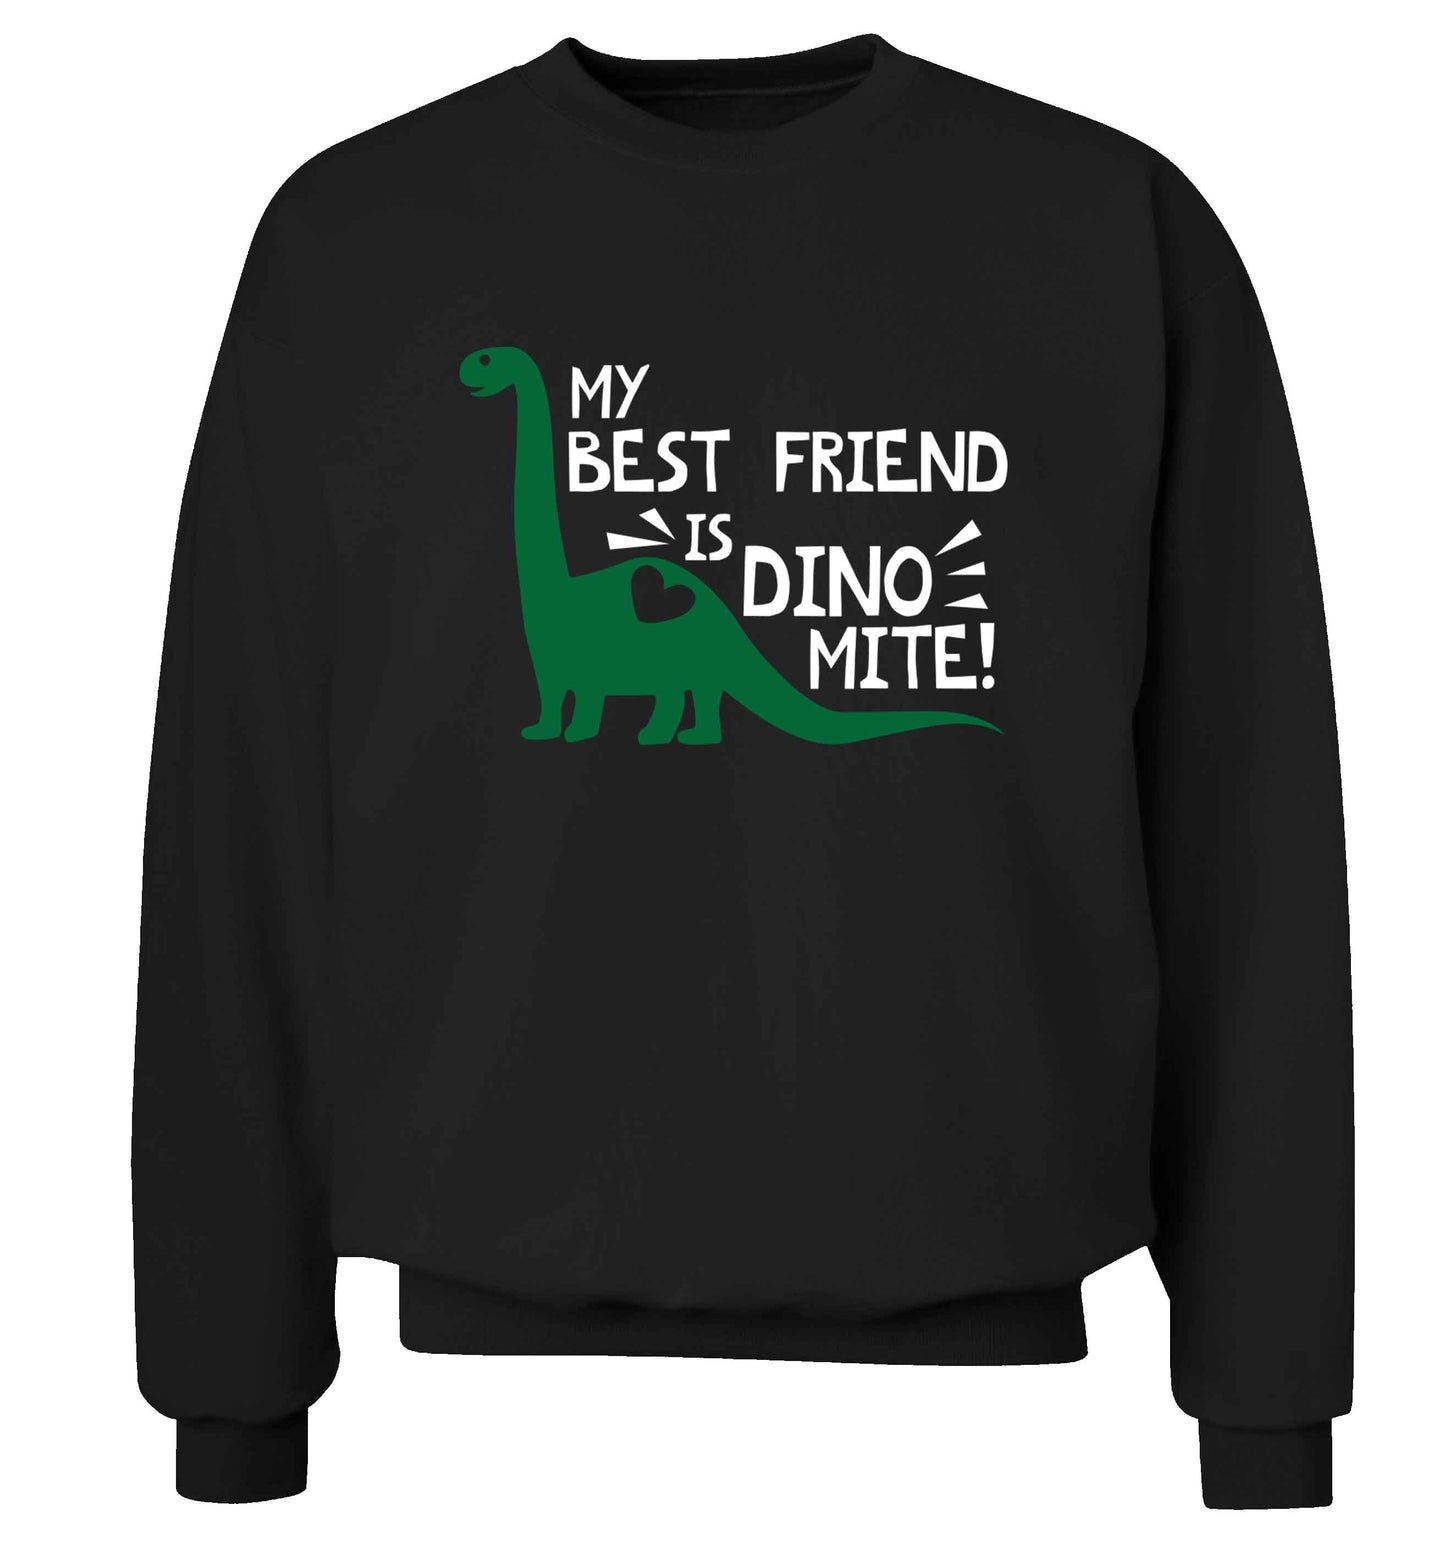 My cousin is dinomite! Adult's unisex black Sweater 2XL